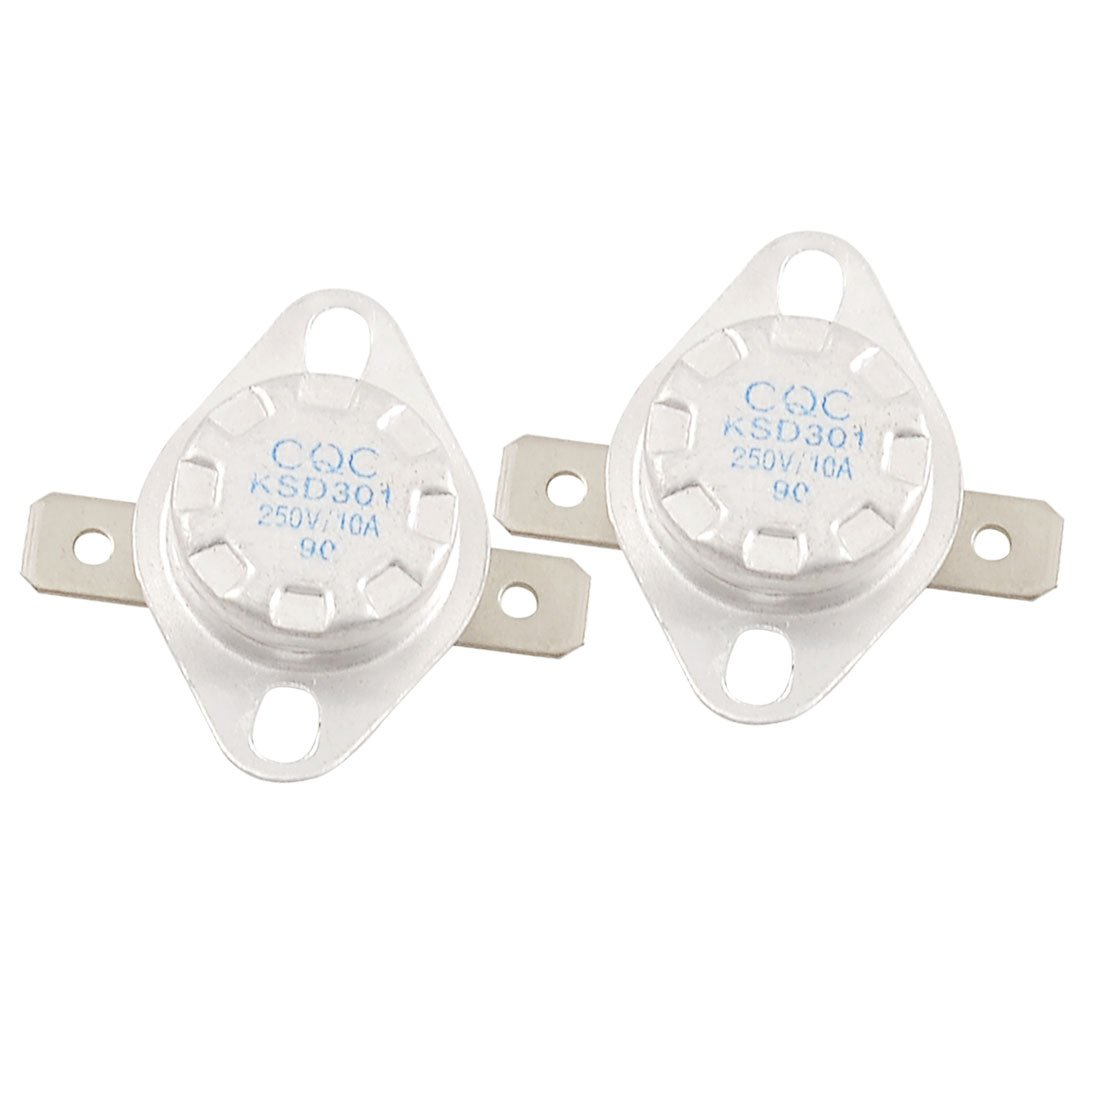 2  pcs KSD301  90  degré s Celsius Cé ramique Thermostat Tempé rature Interrupteur NC Sourcingmap a12101700ux0387